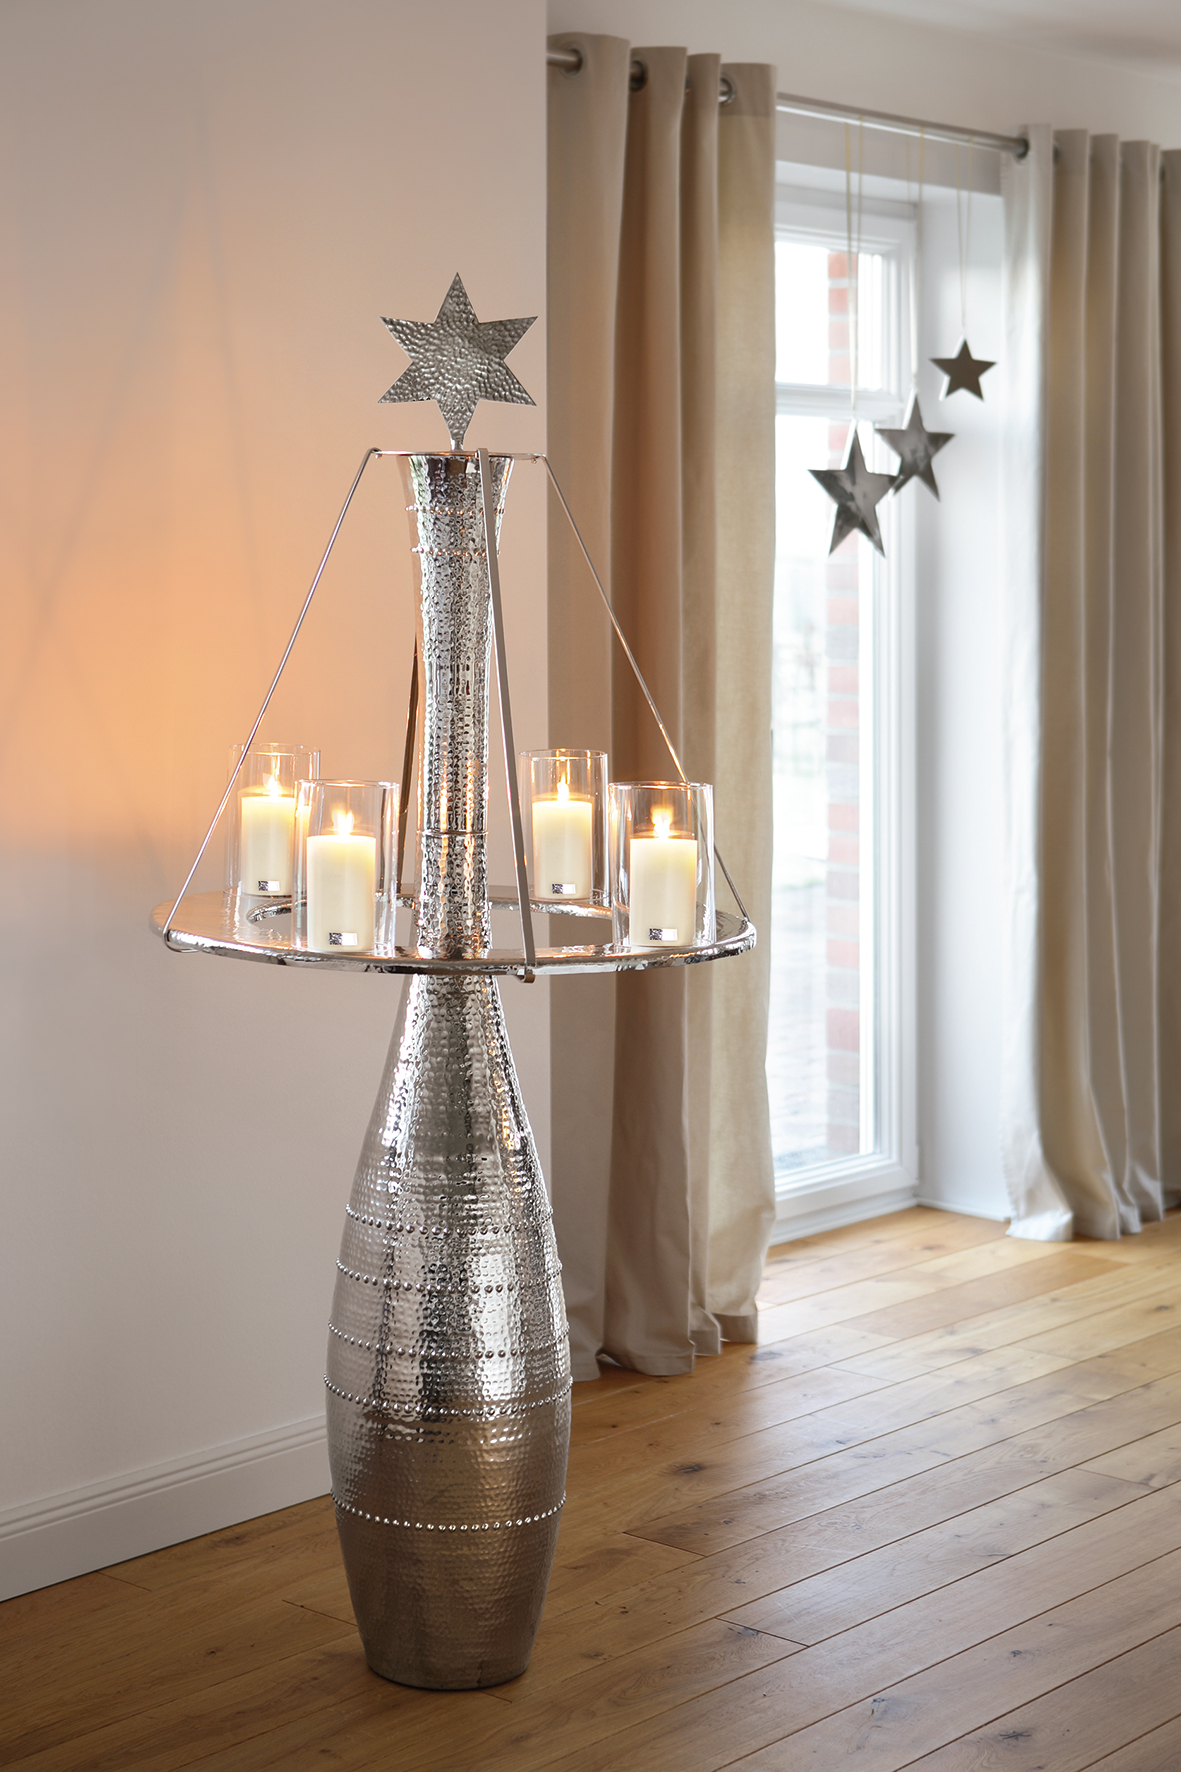 Christmas dining, tall nickel candlestick with star and hoop decoration